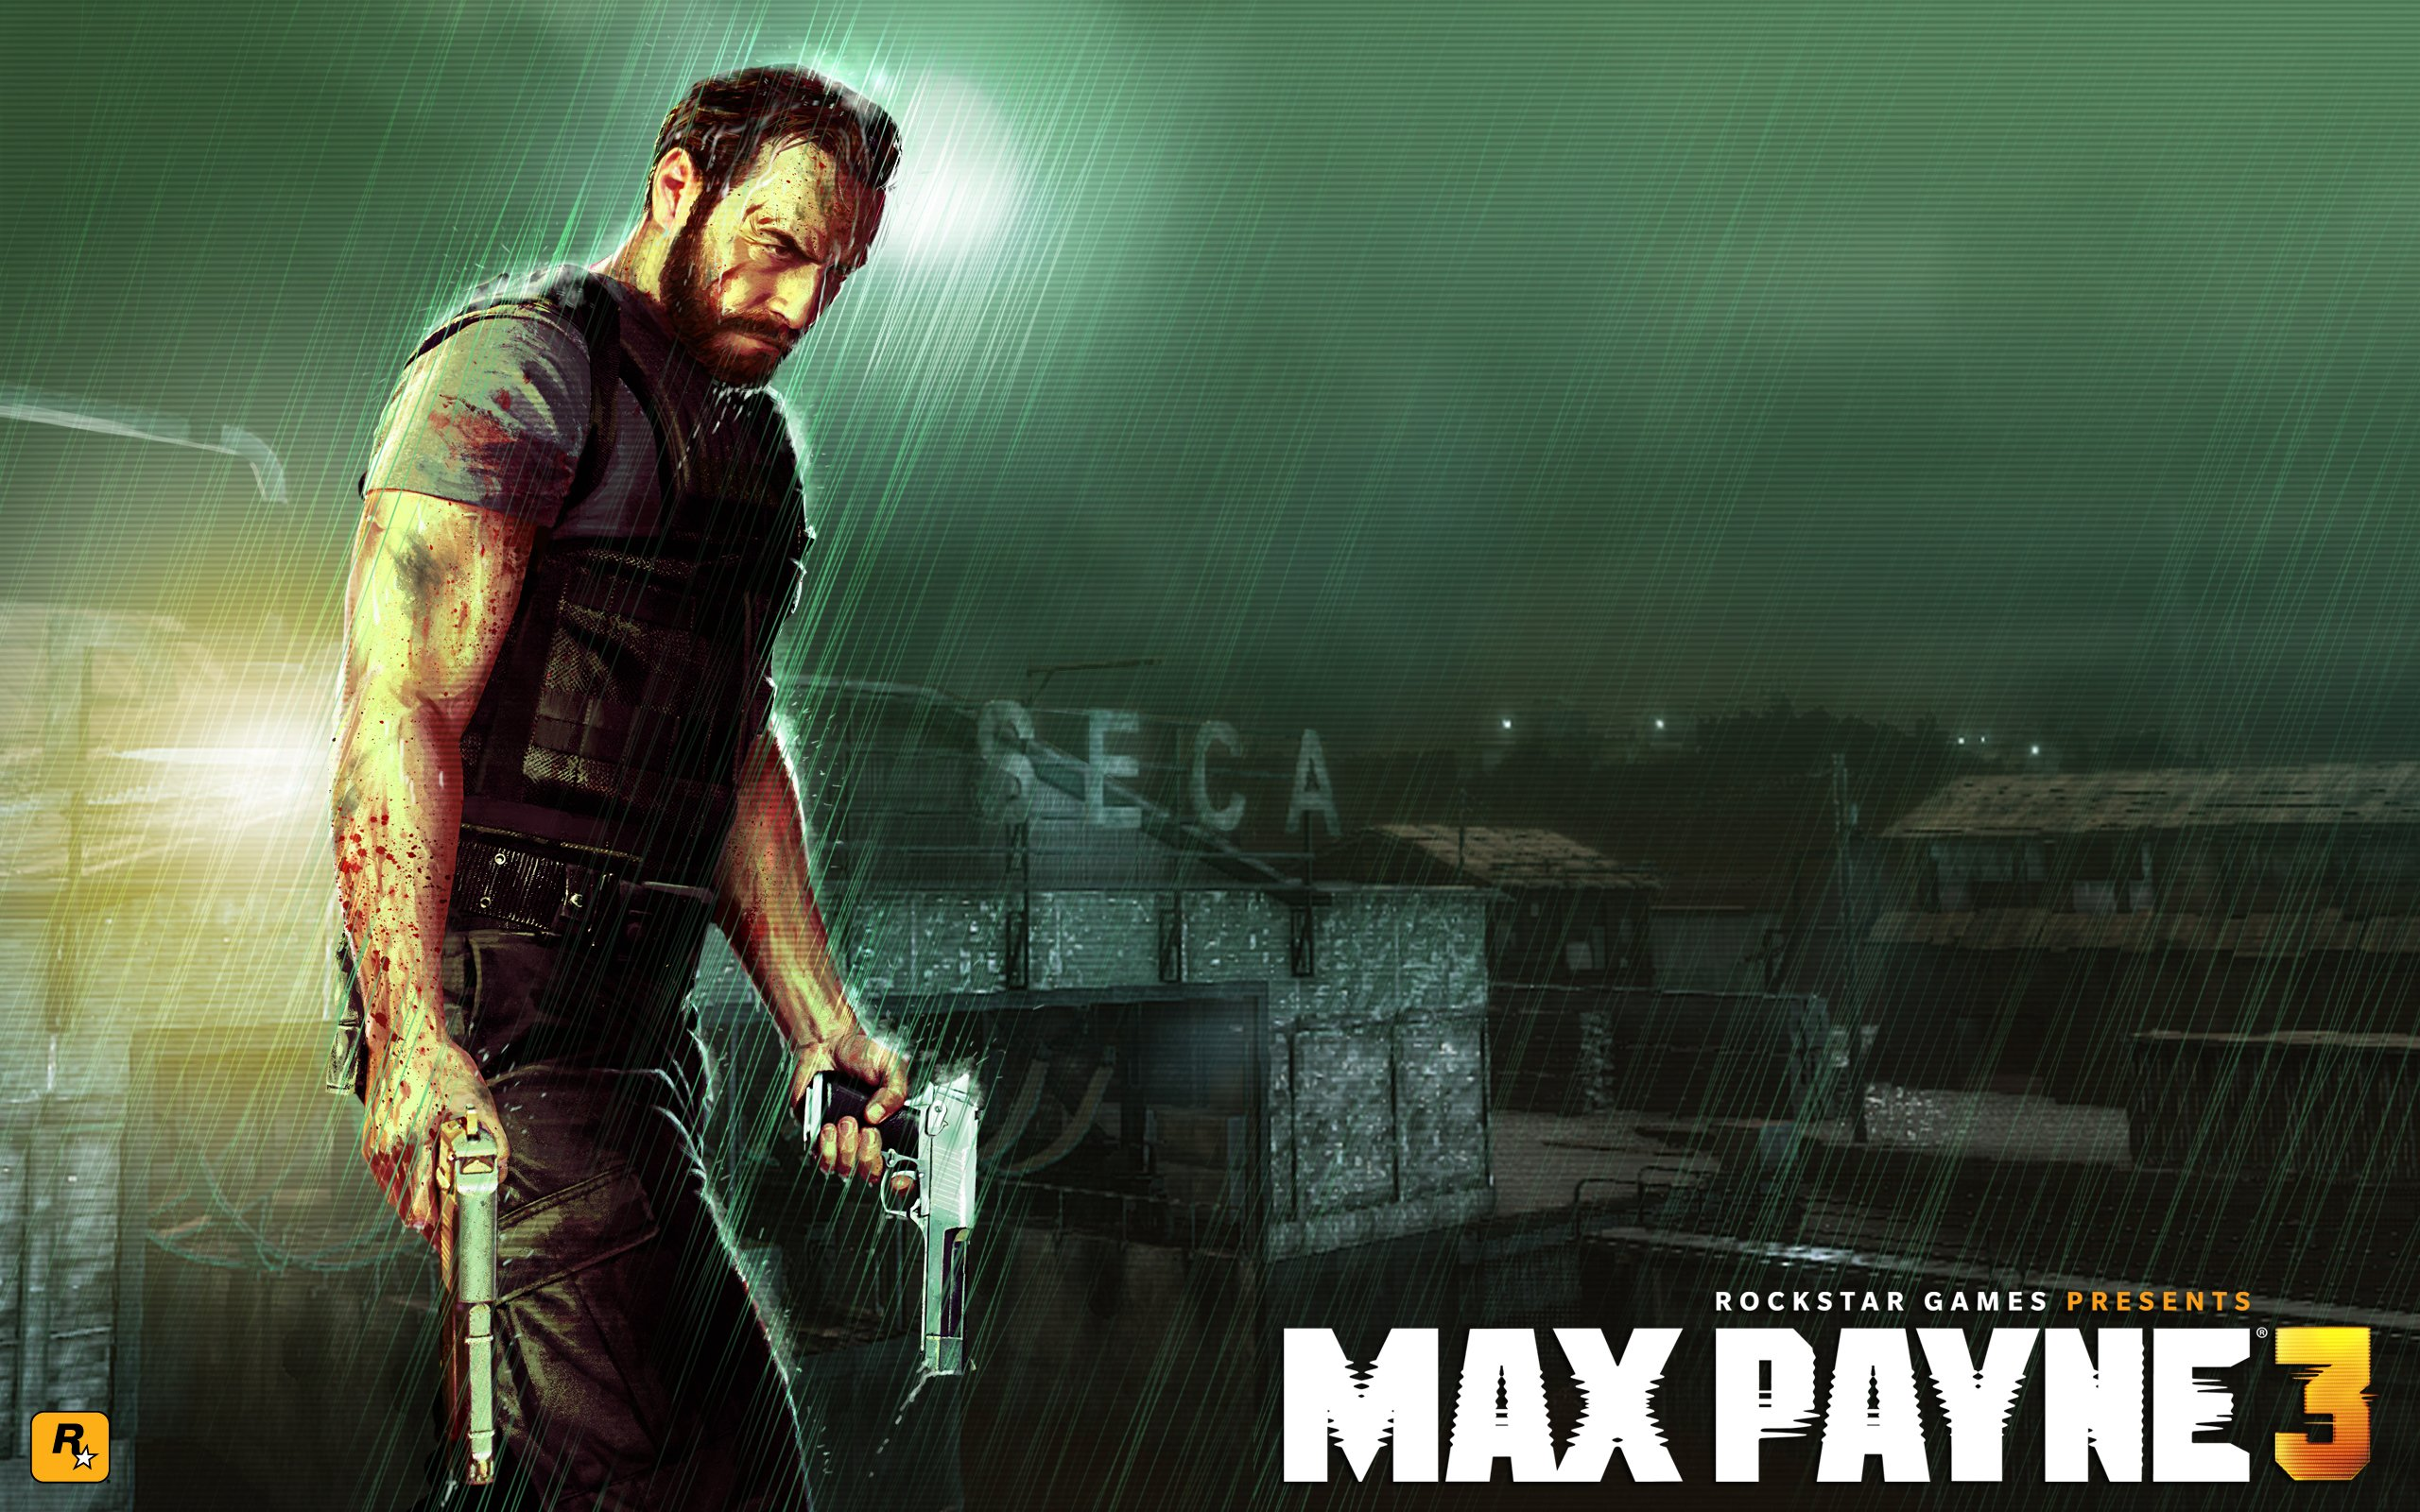 Max Payne 3 Game Wallpapers HD Wallpapers 2560x1600